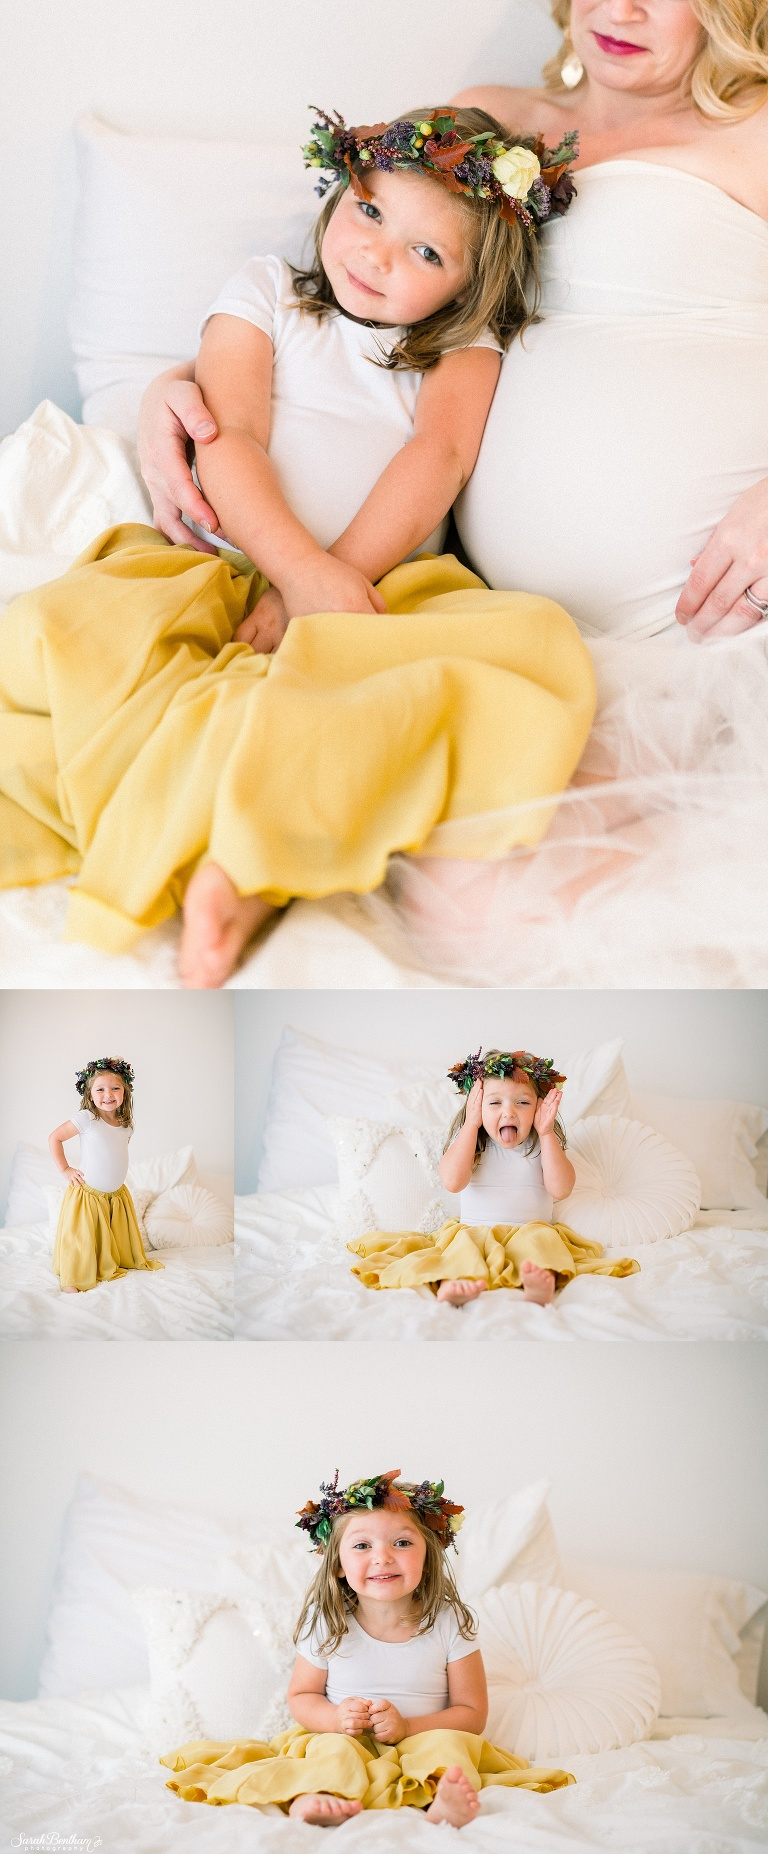 light and airy maternity photography